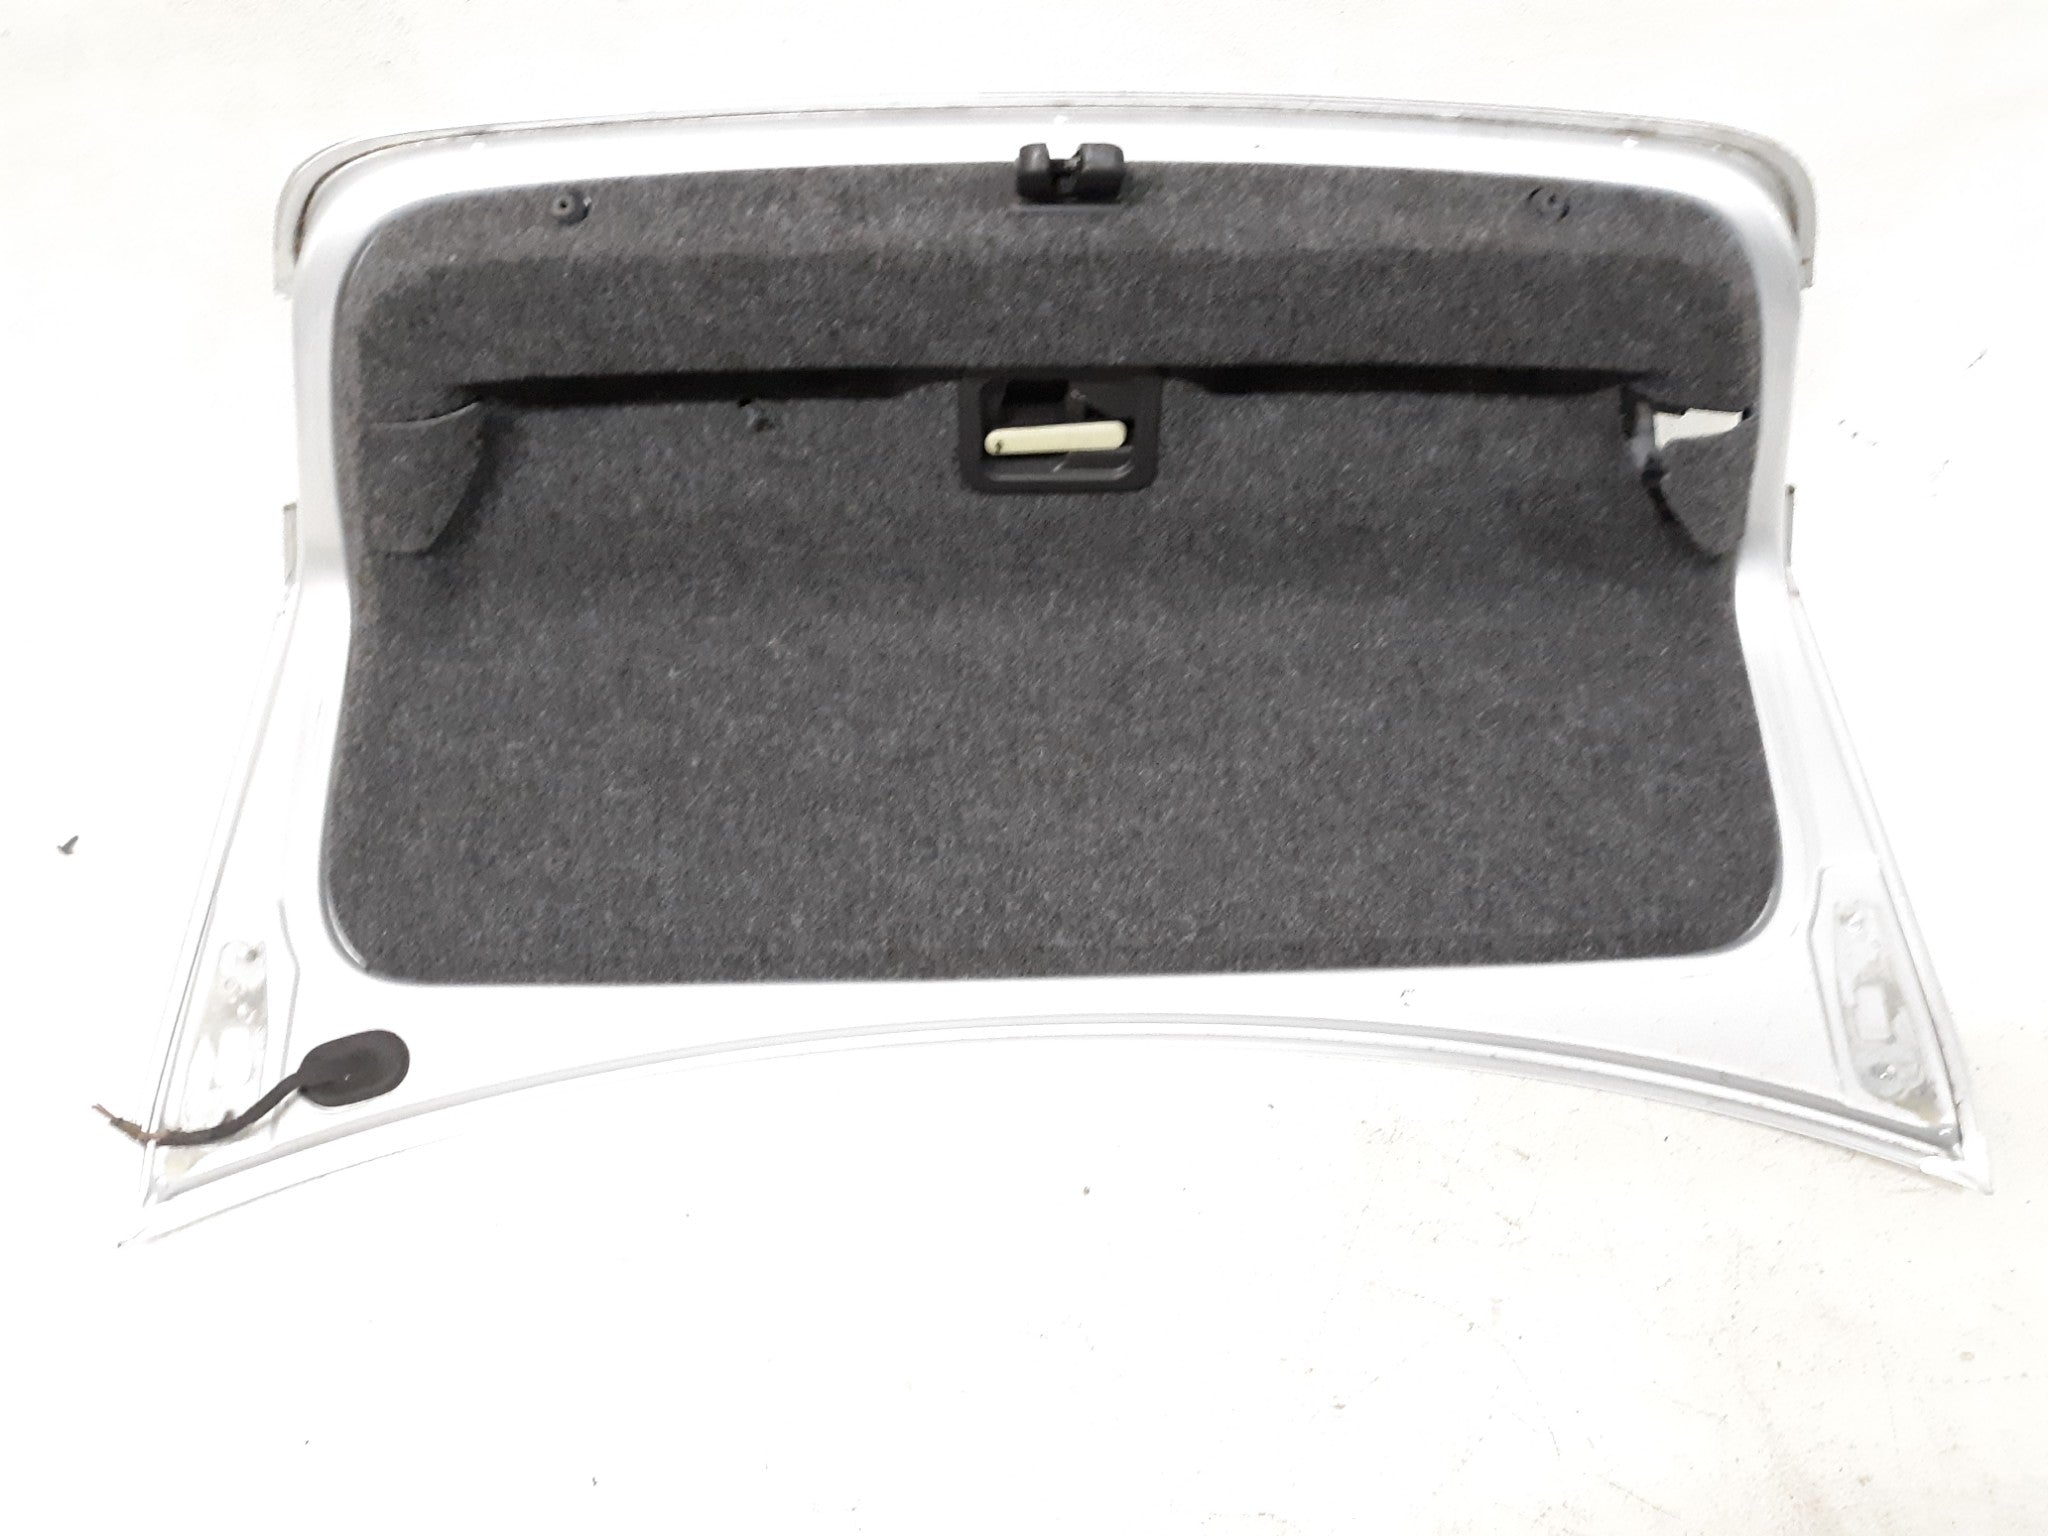 VW JETTA SE SEDAN MK5 TRUNK LID HATCH W/SPOILER SILVER 2008 2009 2010 OEM